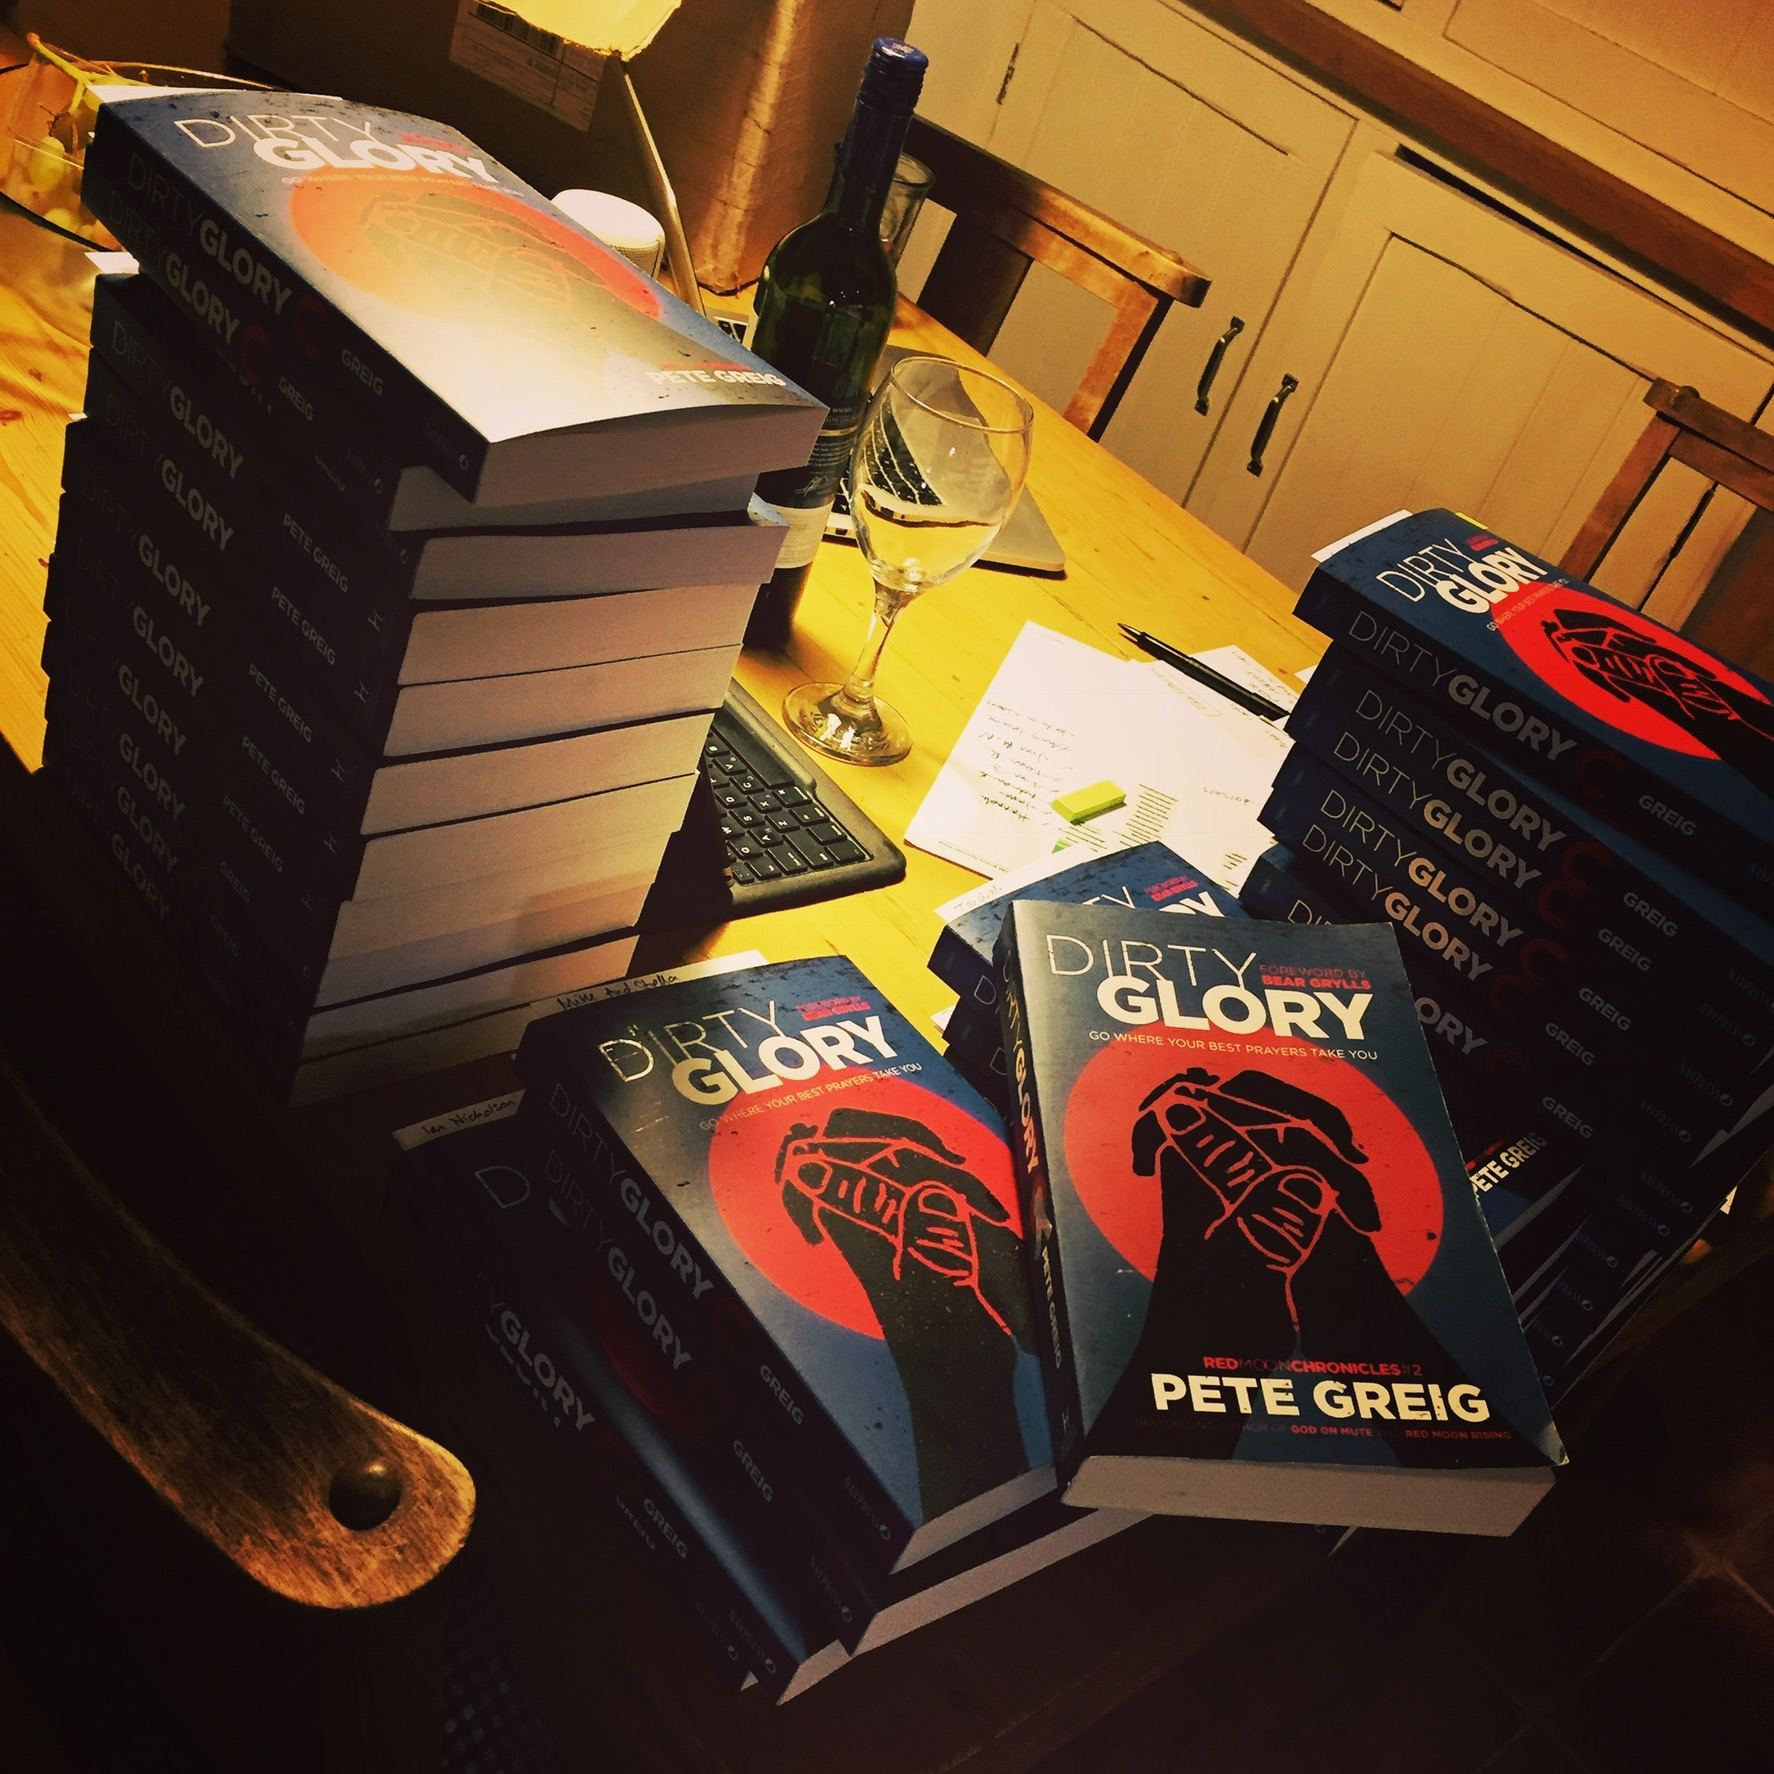 First Copies - September 2016: Sending out complimentary first edition copies to all the people involved in the Dirty Glory project.